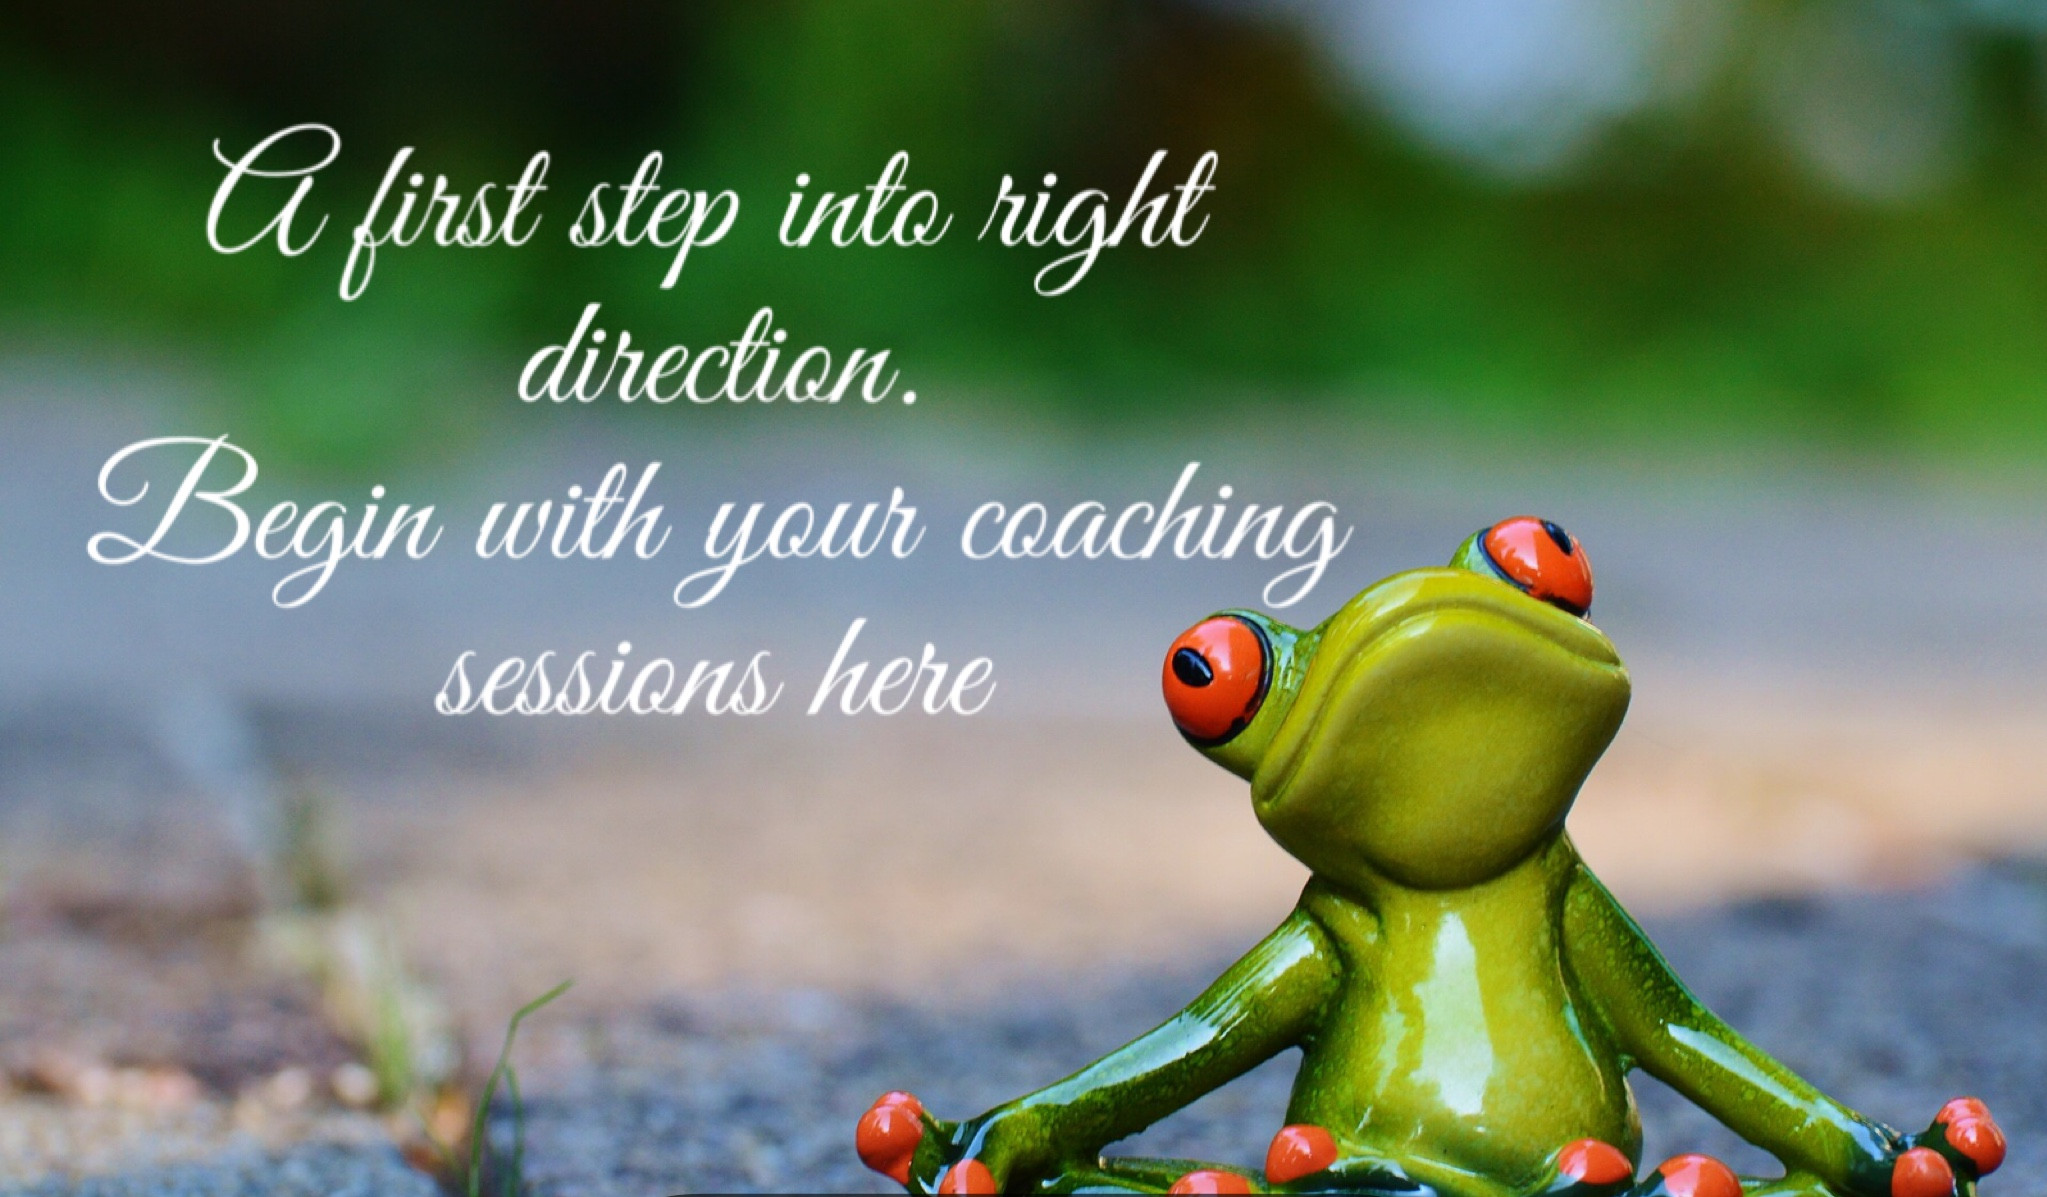 Individual health coaching sessions